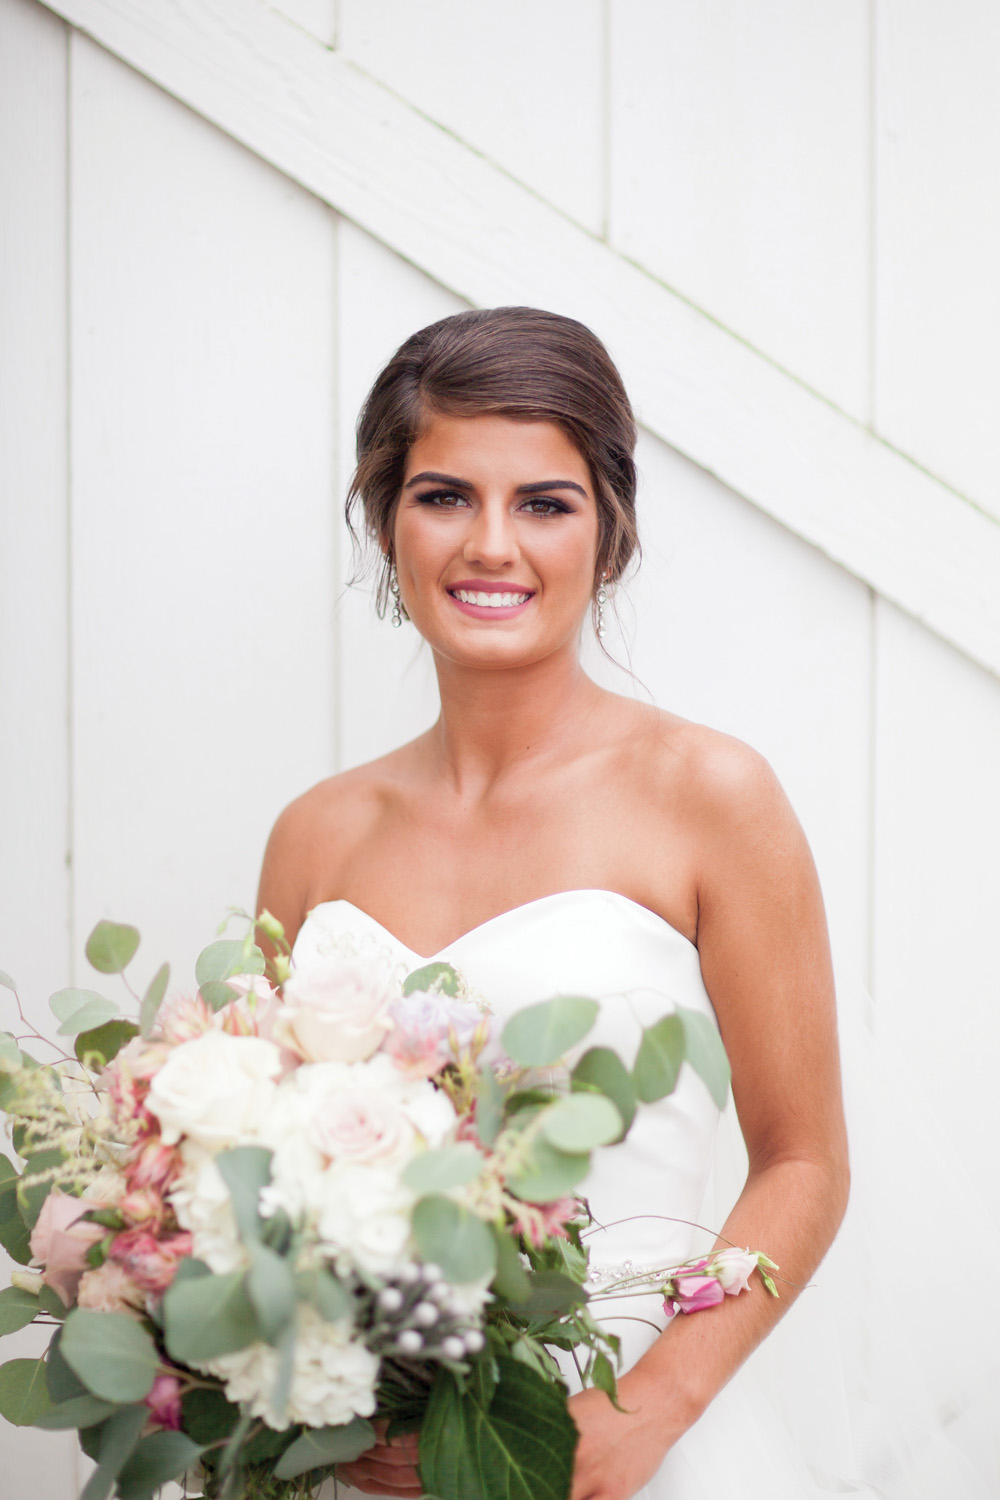 Her Softly Swept Updo Created By Marissa At L M Hair Design Along With Natural Bridal Makeup Perfected Ashley Troxel Are Such A Sweet Look For